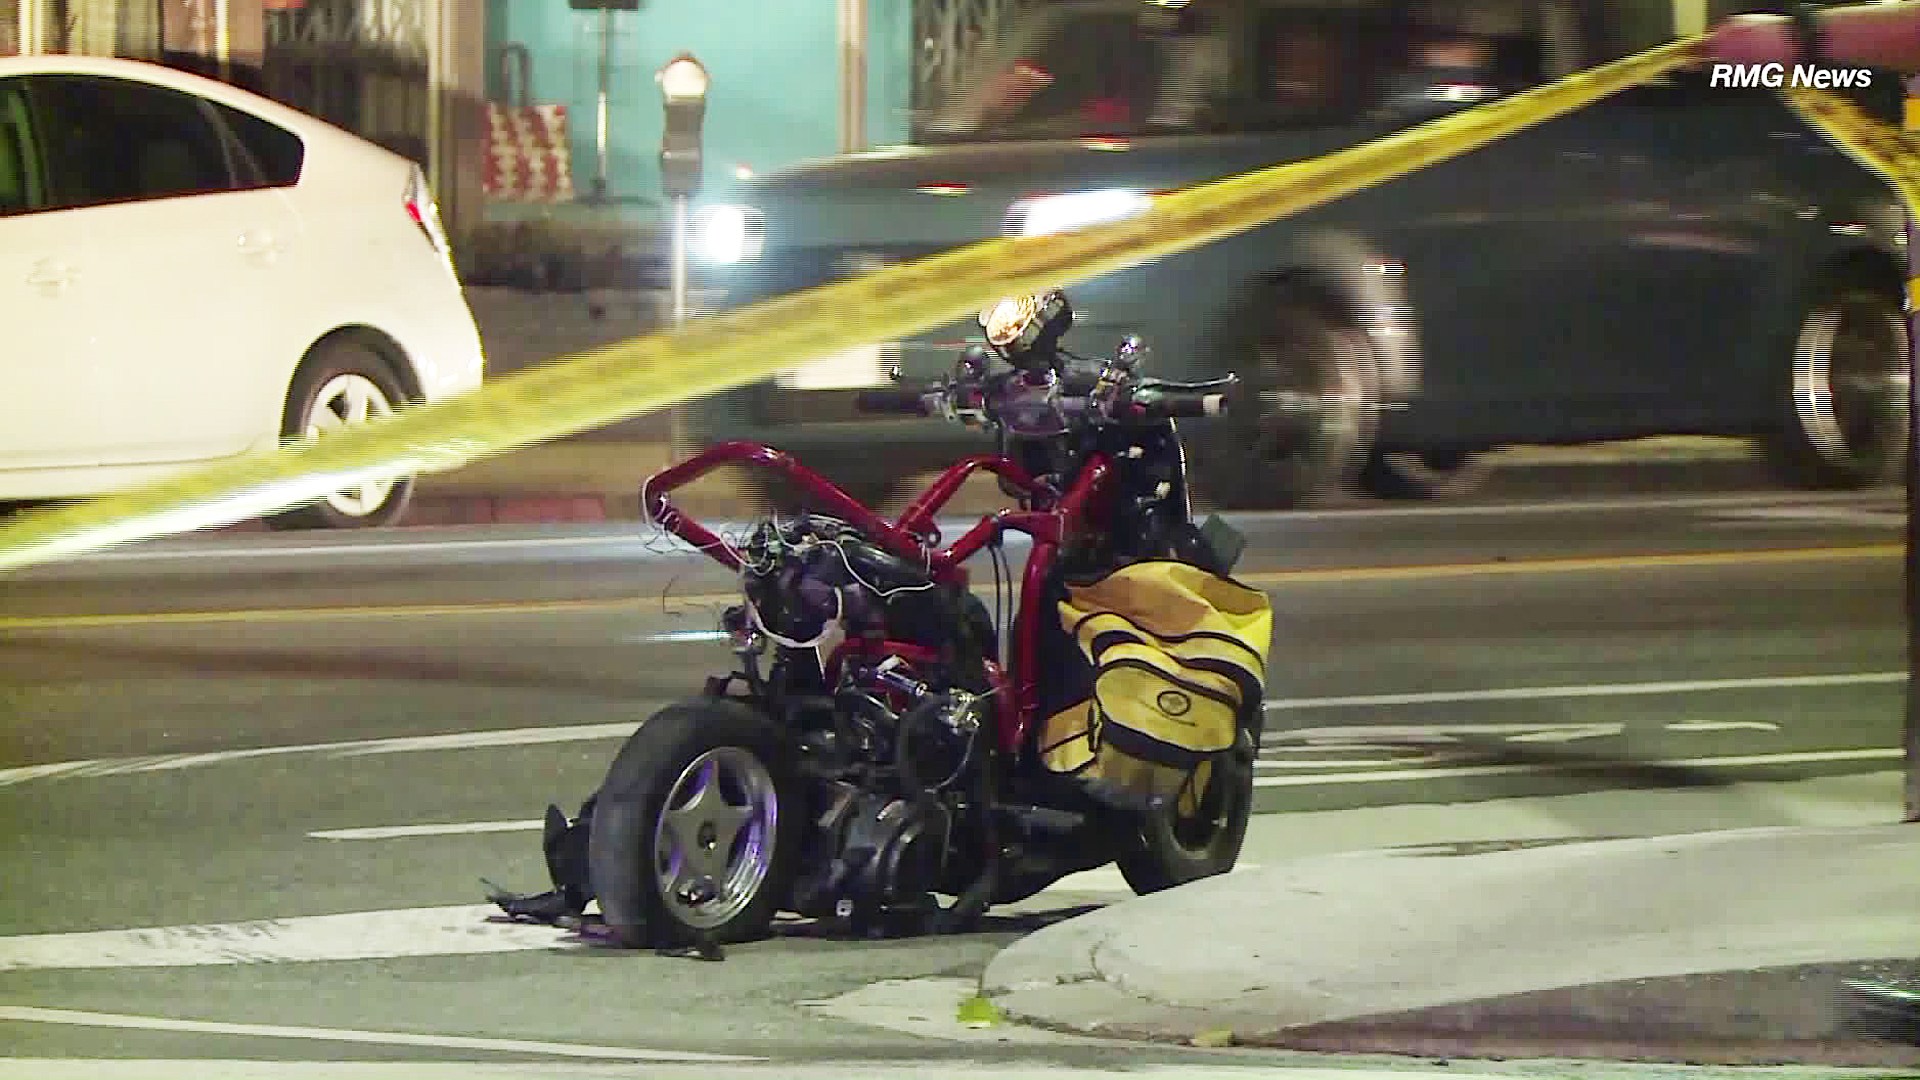 Two people were injured while riding on a scooter in Silver Lake on Sept. 4, 2018. The passenger later died from his injuries. (Credit: RMG News)